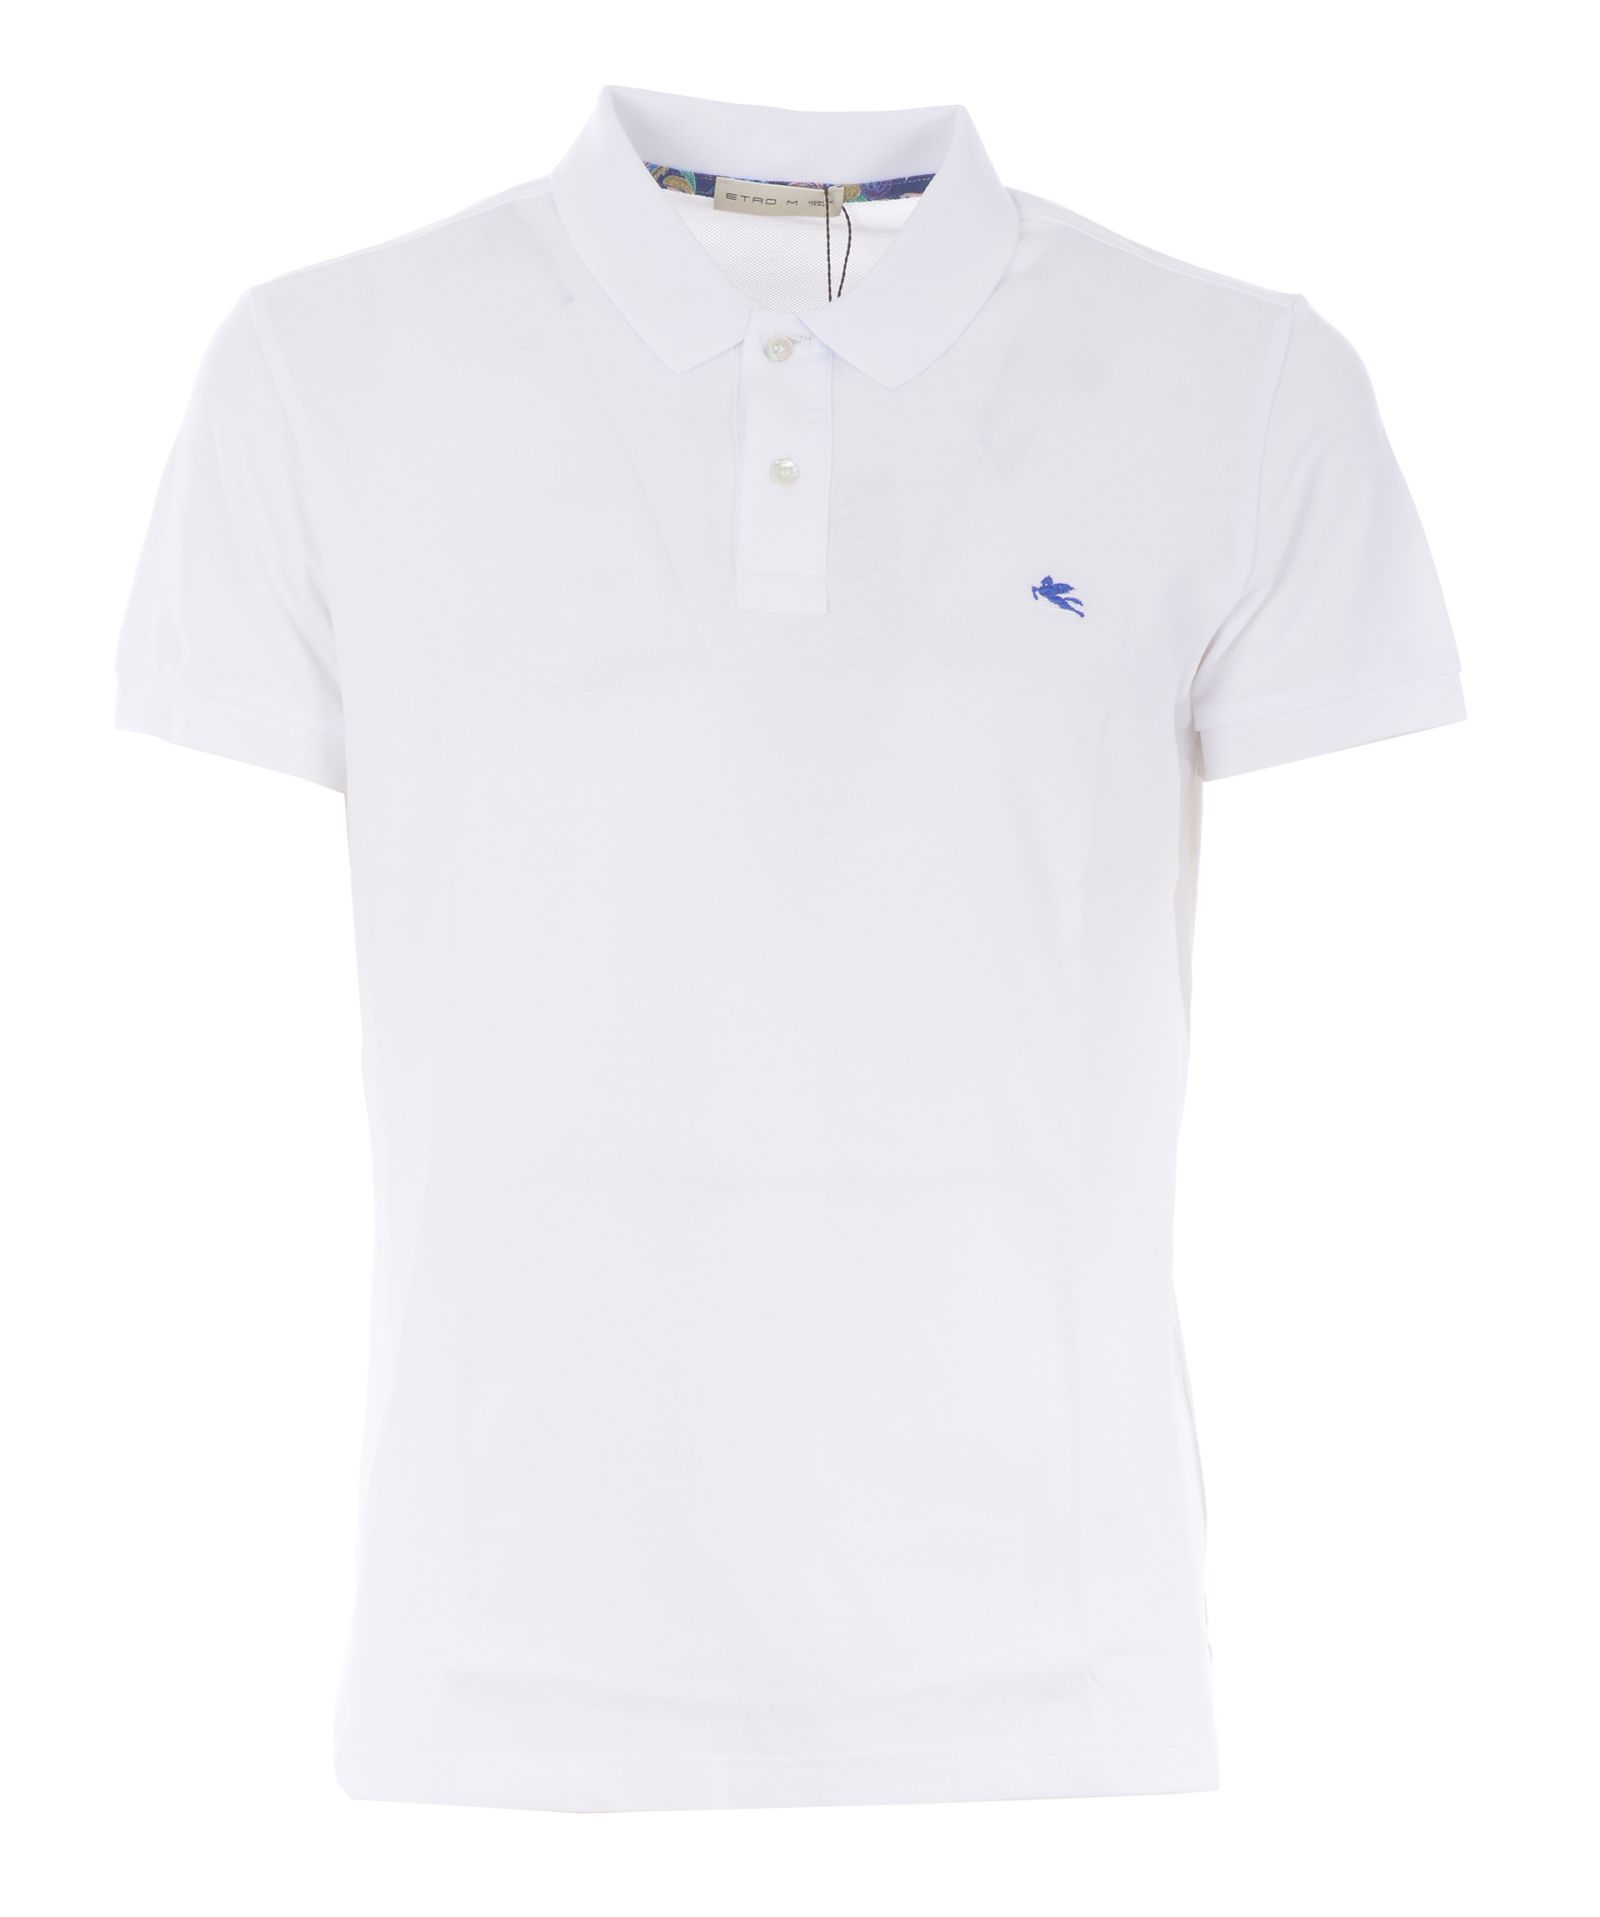 96b3aee2a Etro Chest Logo Polo Shirt - Bianco - 10863597 | italist